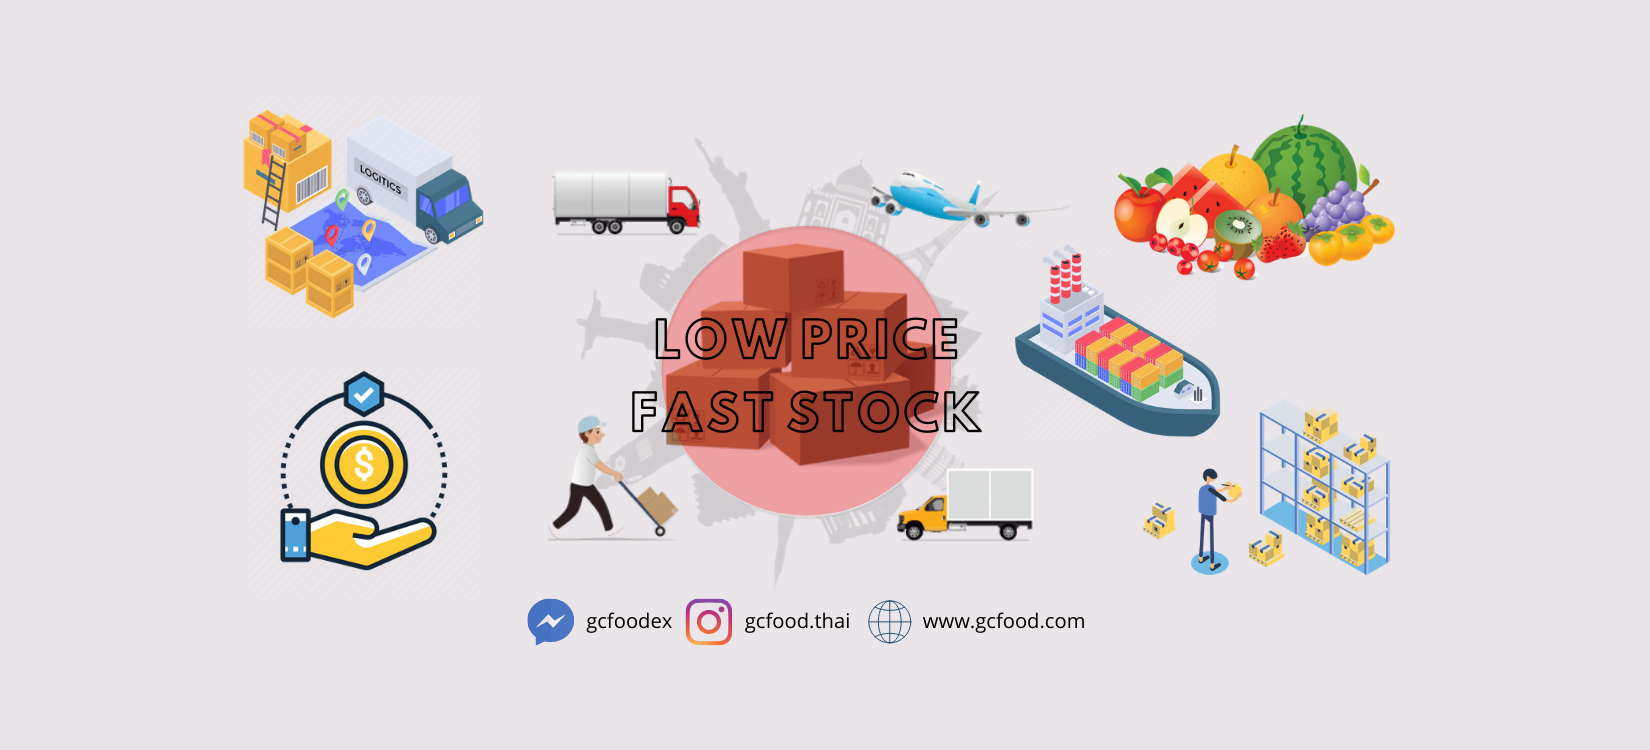 LOW PRICE FAST STOCK PROMPT SHIPMENT